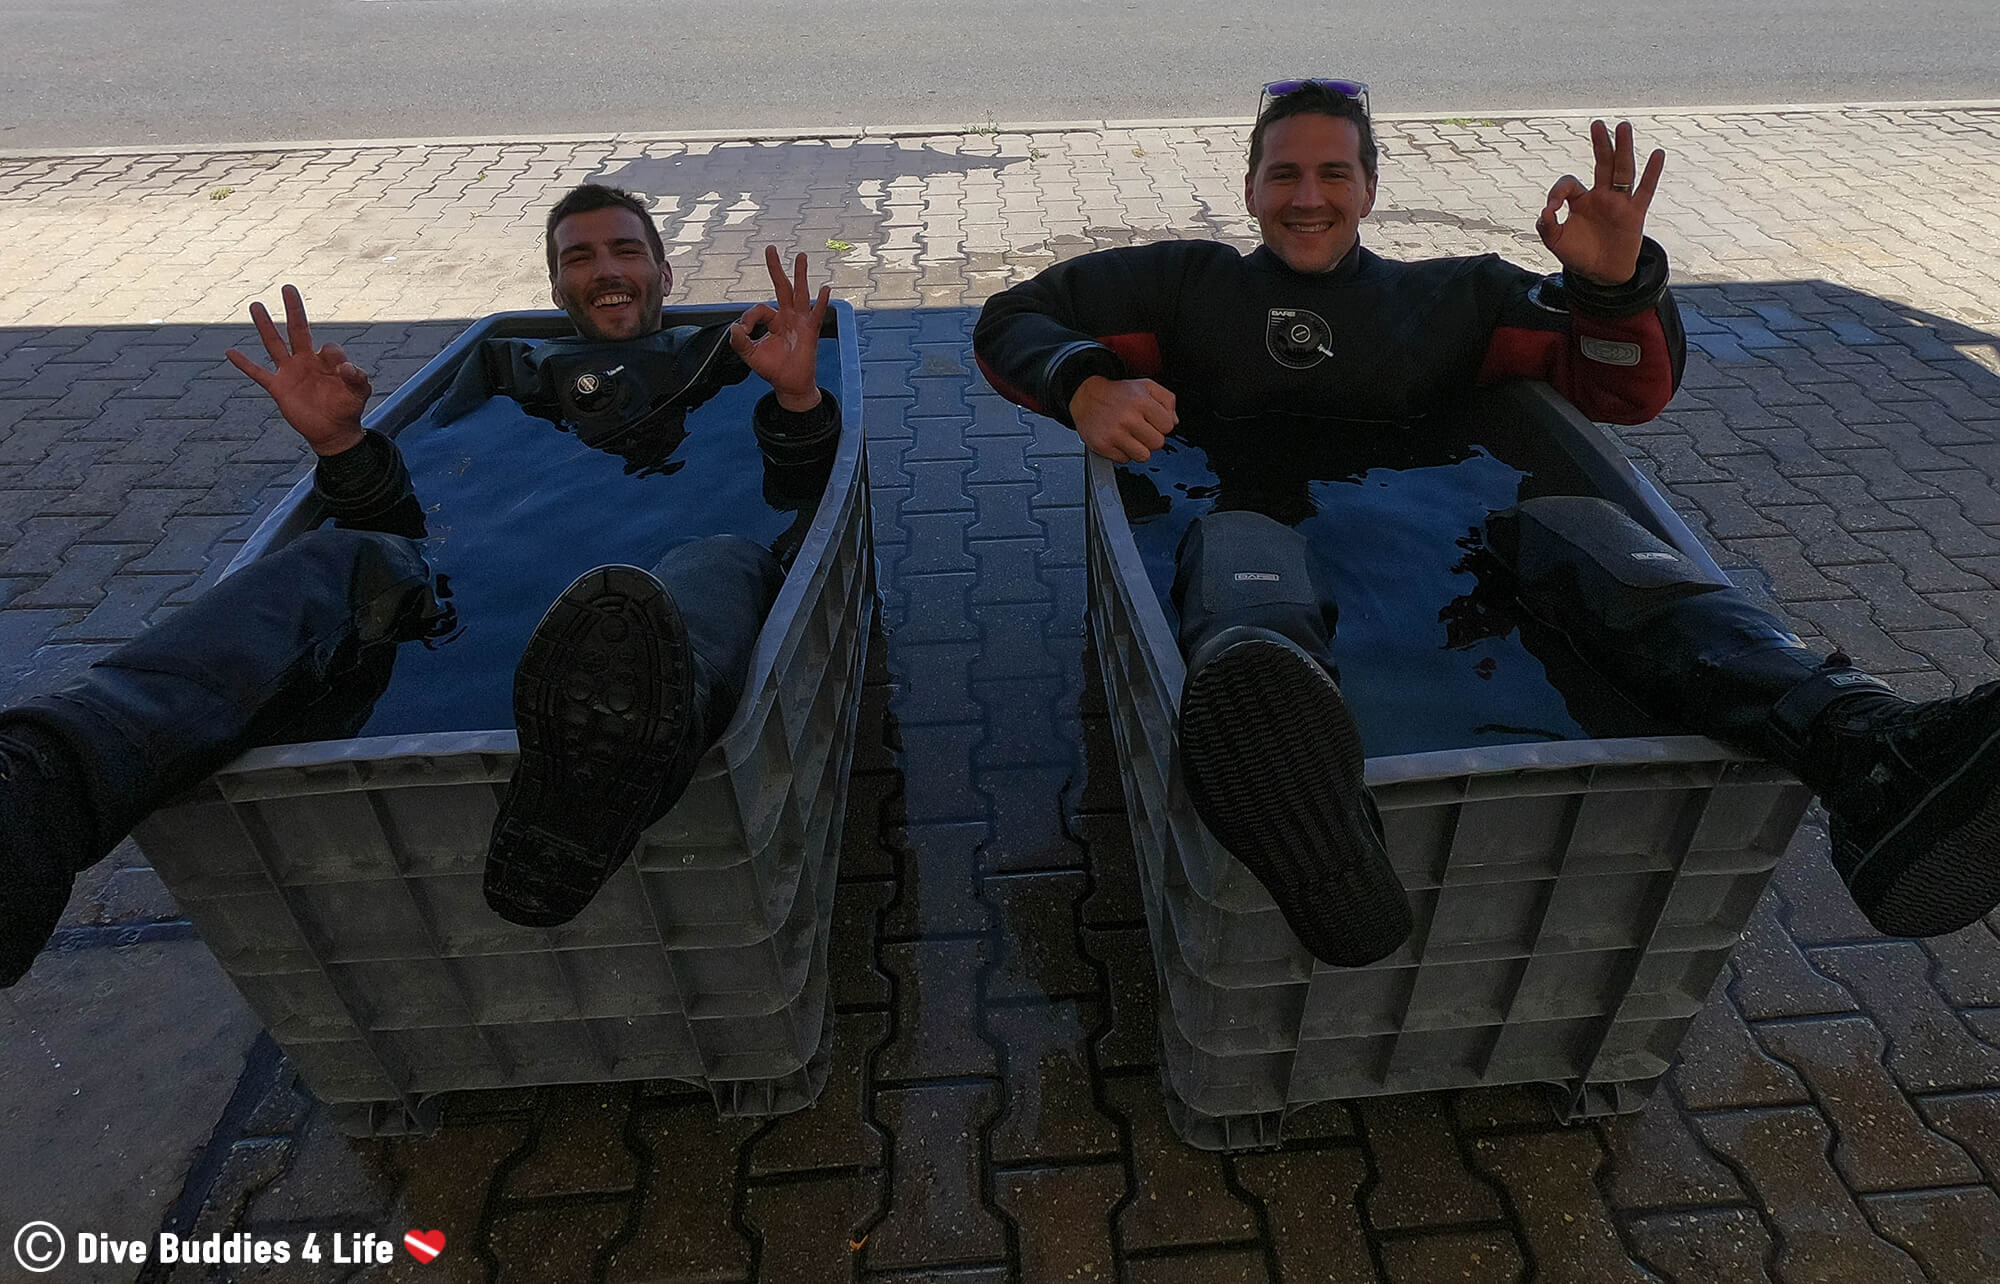 Two Divers Sitting In A Rinse Bin Cleaning Off Their Dive Equipment After A Scuba Dive In Sesimbra, Portugal, Europe